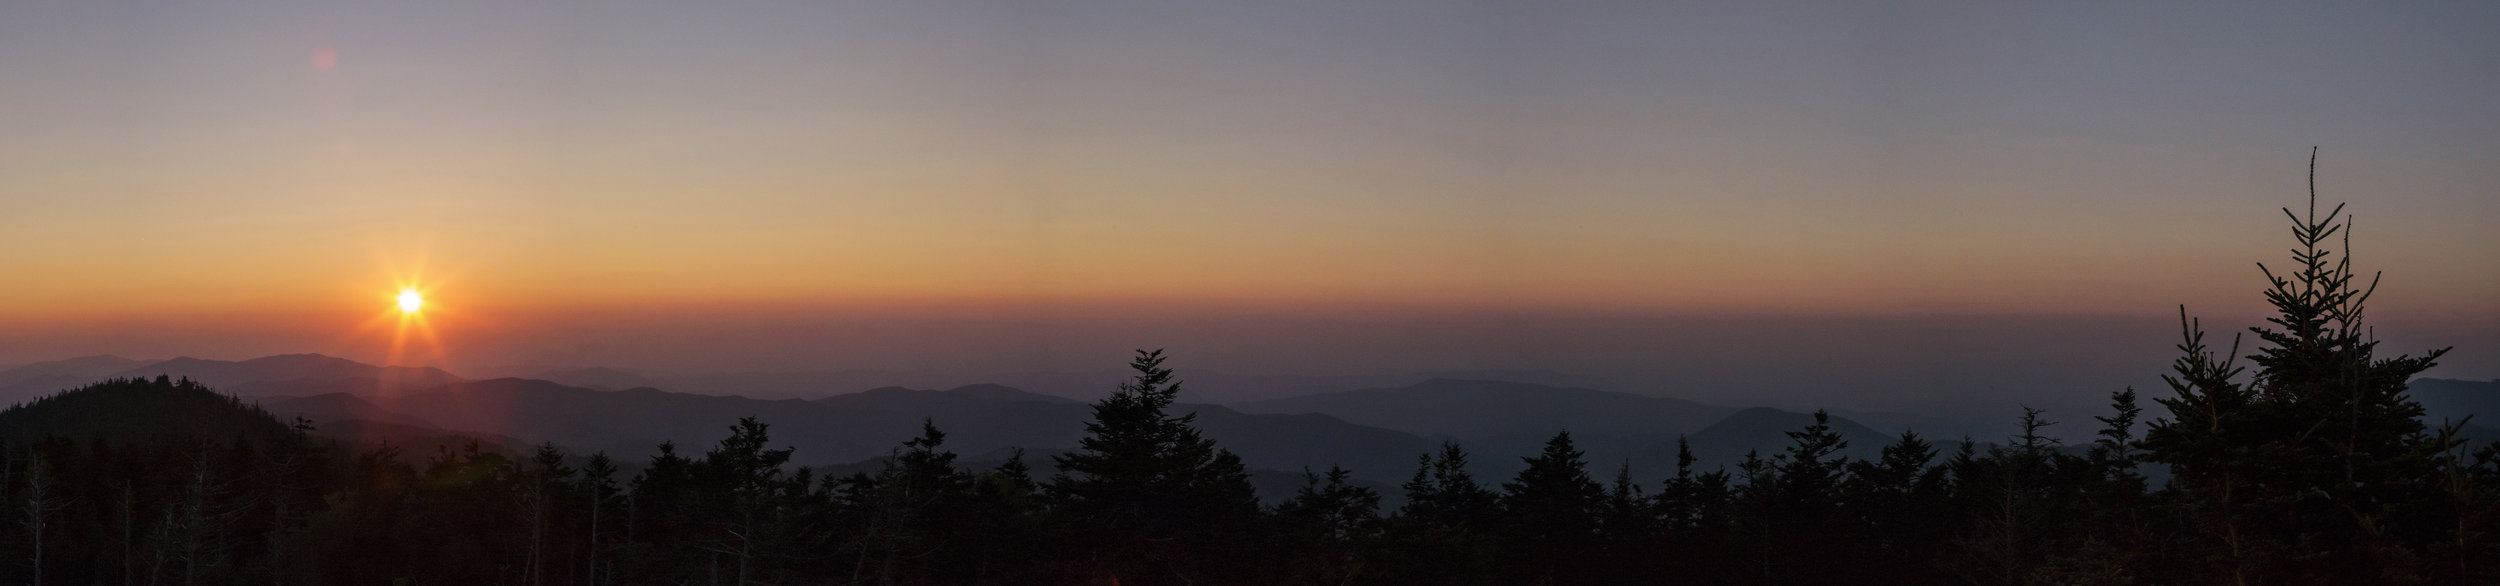 Sunset over the Smokeys